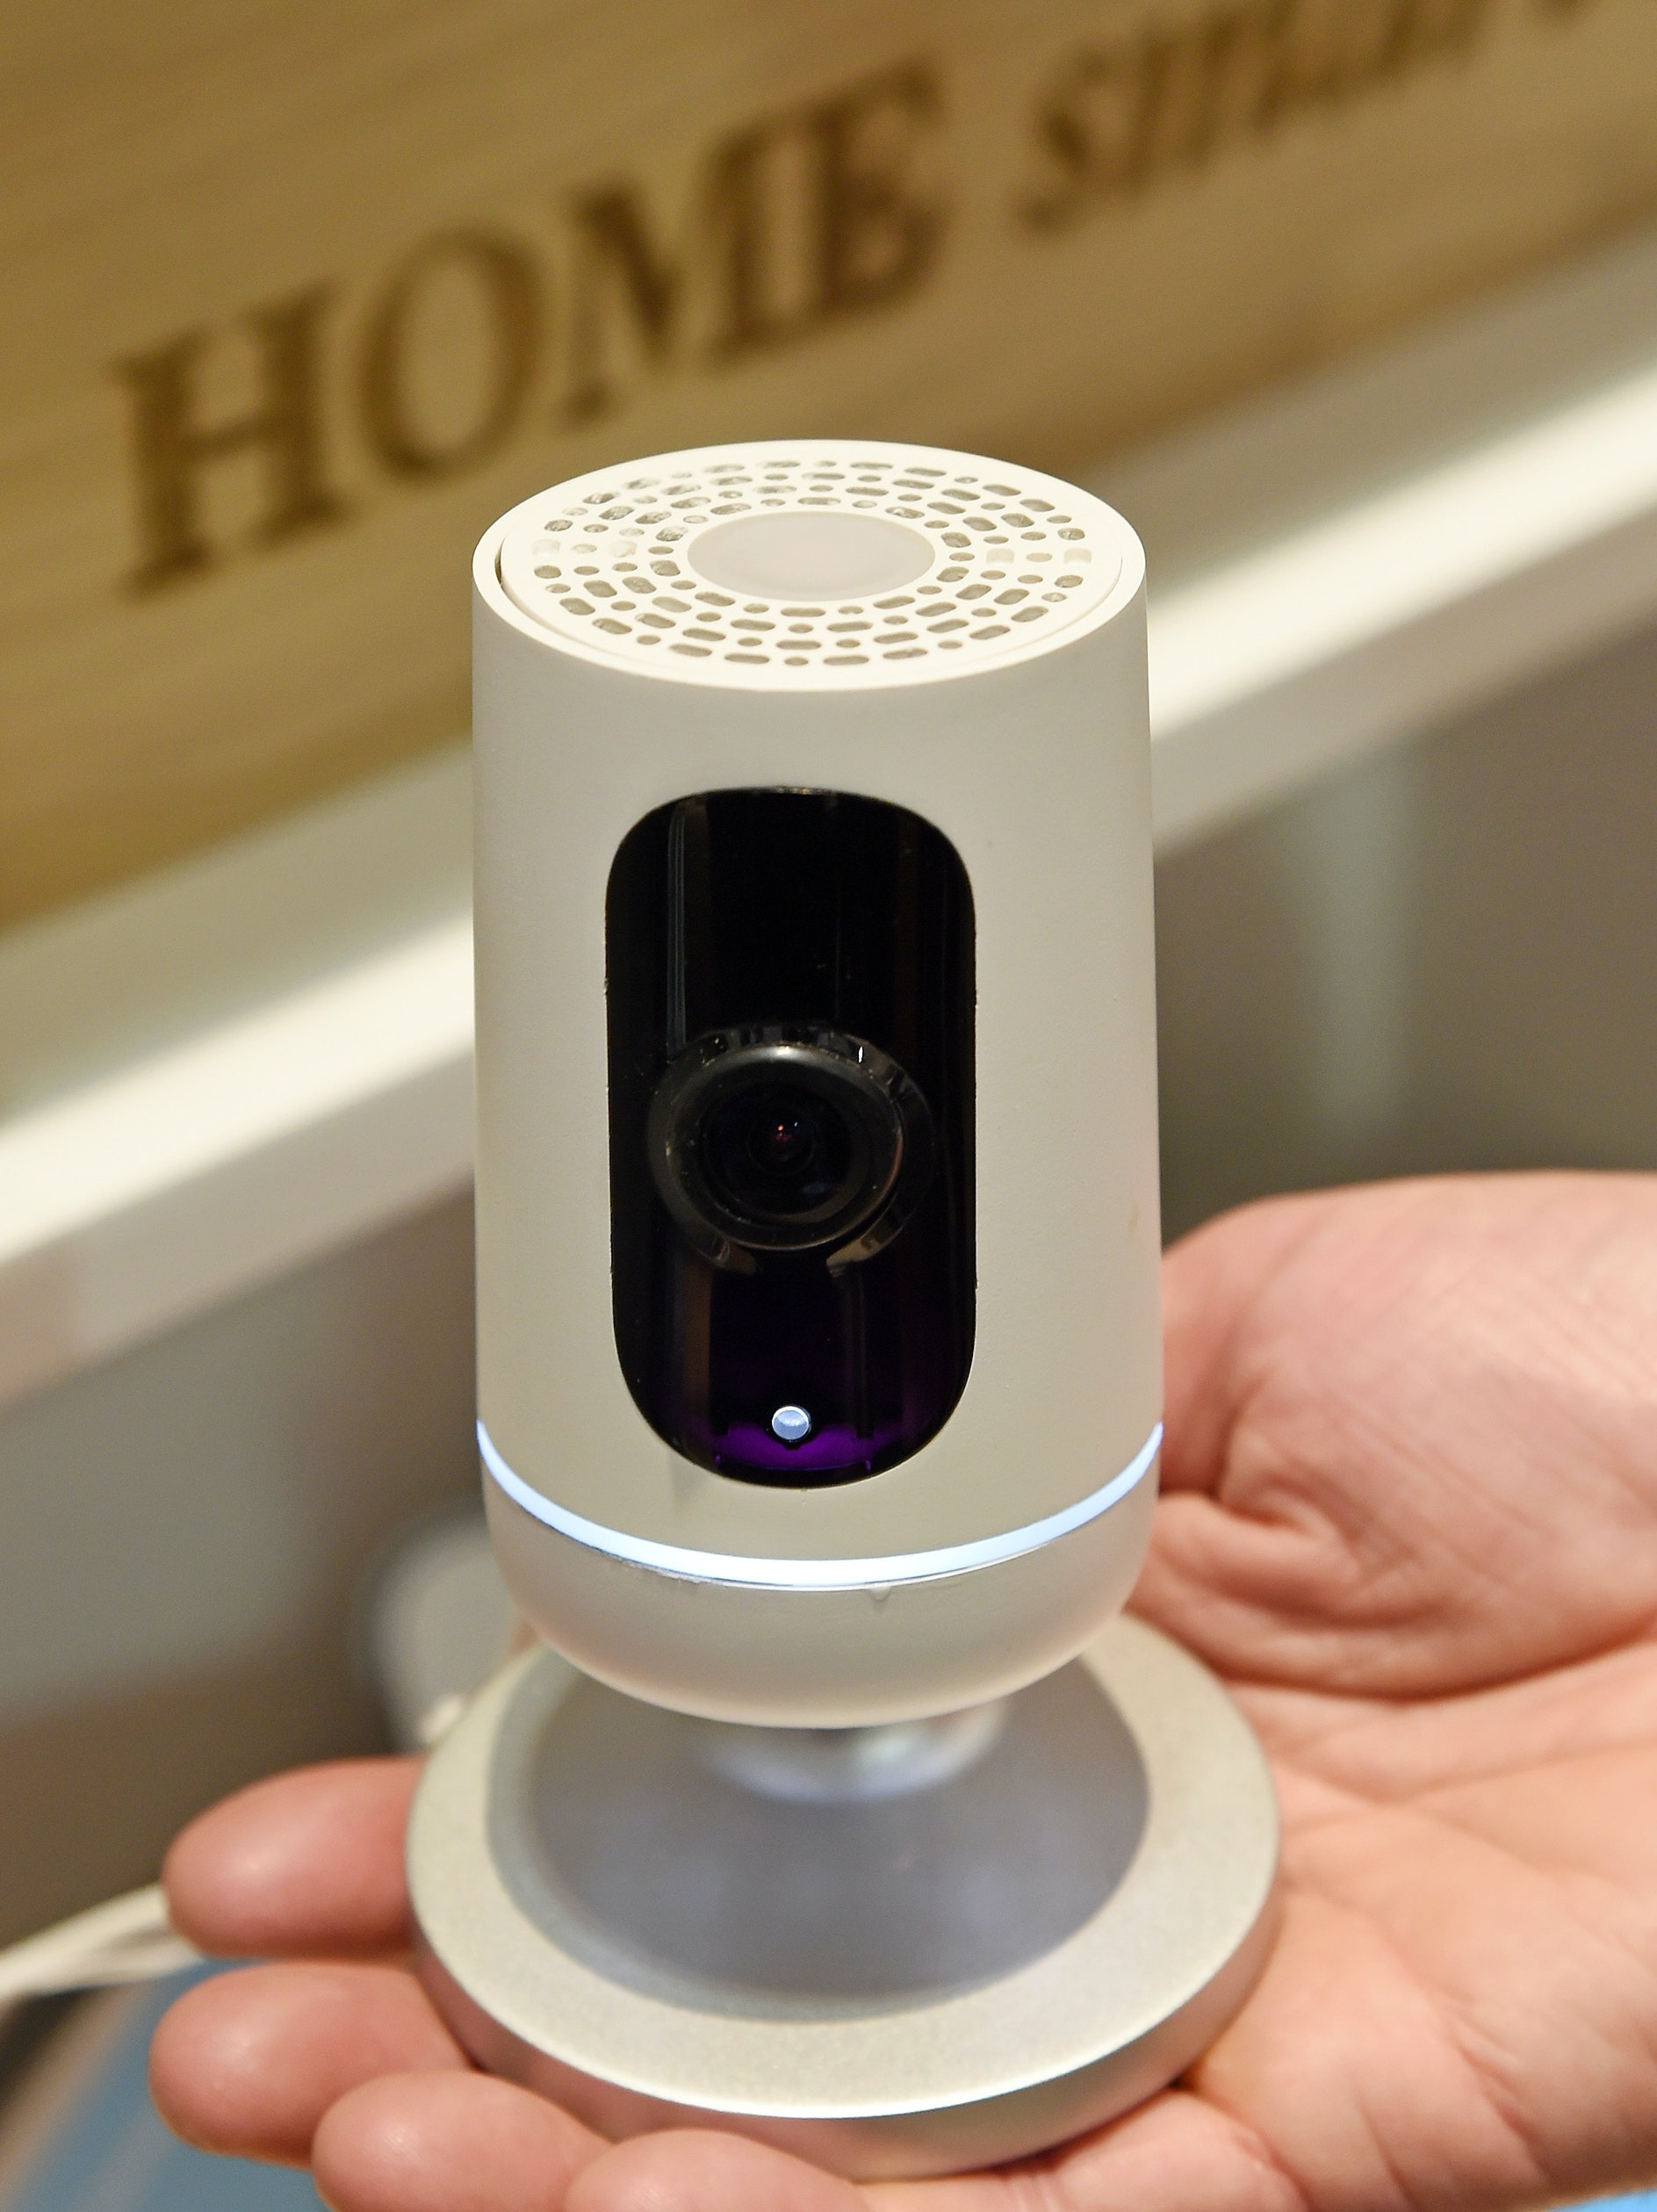 LAS VEGAS, NV - JANUARY 07:  The Vivint Ping Camera is displayed at CES 2016 at the Sands Expo and Convention Center on January 7, 2016 in Las Vegas, Nevada. The Ping, part of the Vivint Sky smart home system, is the world's first two-way talk camera using an integrated microphone and speaker to allow for calls in and out with one touch. Audio and video from the indoor unit can be pushed to a smart device. The Wi-Fi connected Ping features a 140-degree lens and night vision, person detection ability and 24/7 DVR backup of all video it records. CES, the world's largest annual consumer technology trade show, runs through January 9 and features 3,600 exhibitors showing off their latest products and services to more than 150,000 attendees.  (Photo by Ethan Miller/Getty Images)